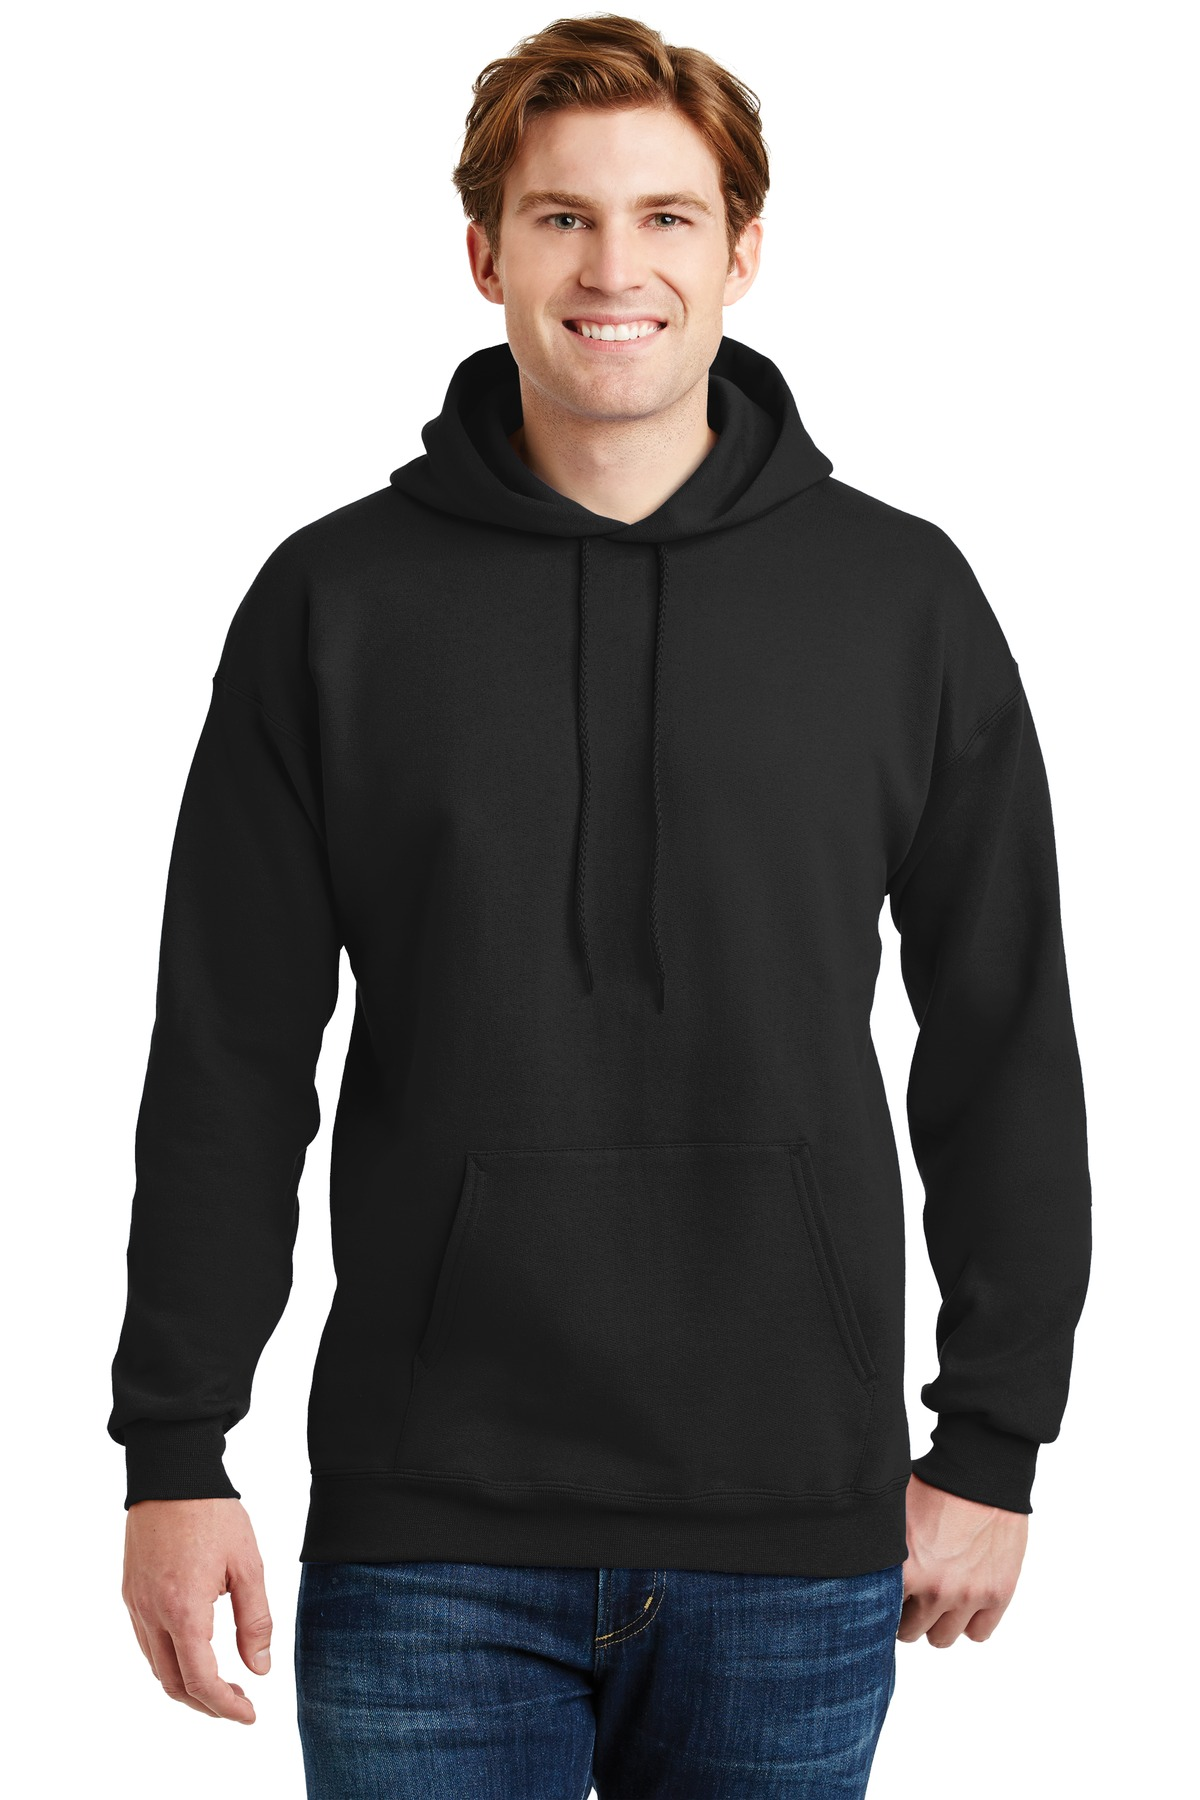 Hanes ®  Ultimate Cotton ®  - Pullover Hooded Sweatshirt.  F170 - Black